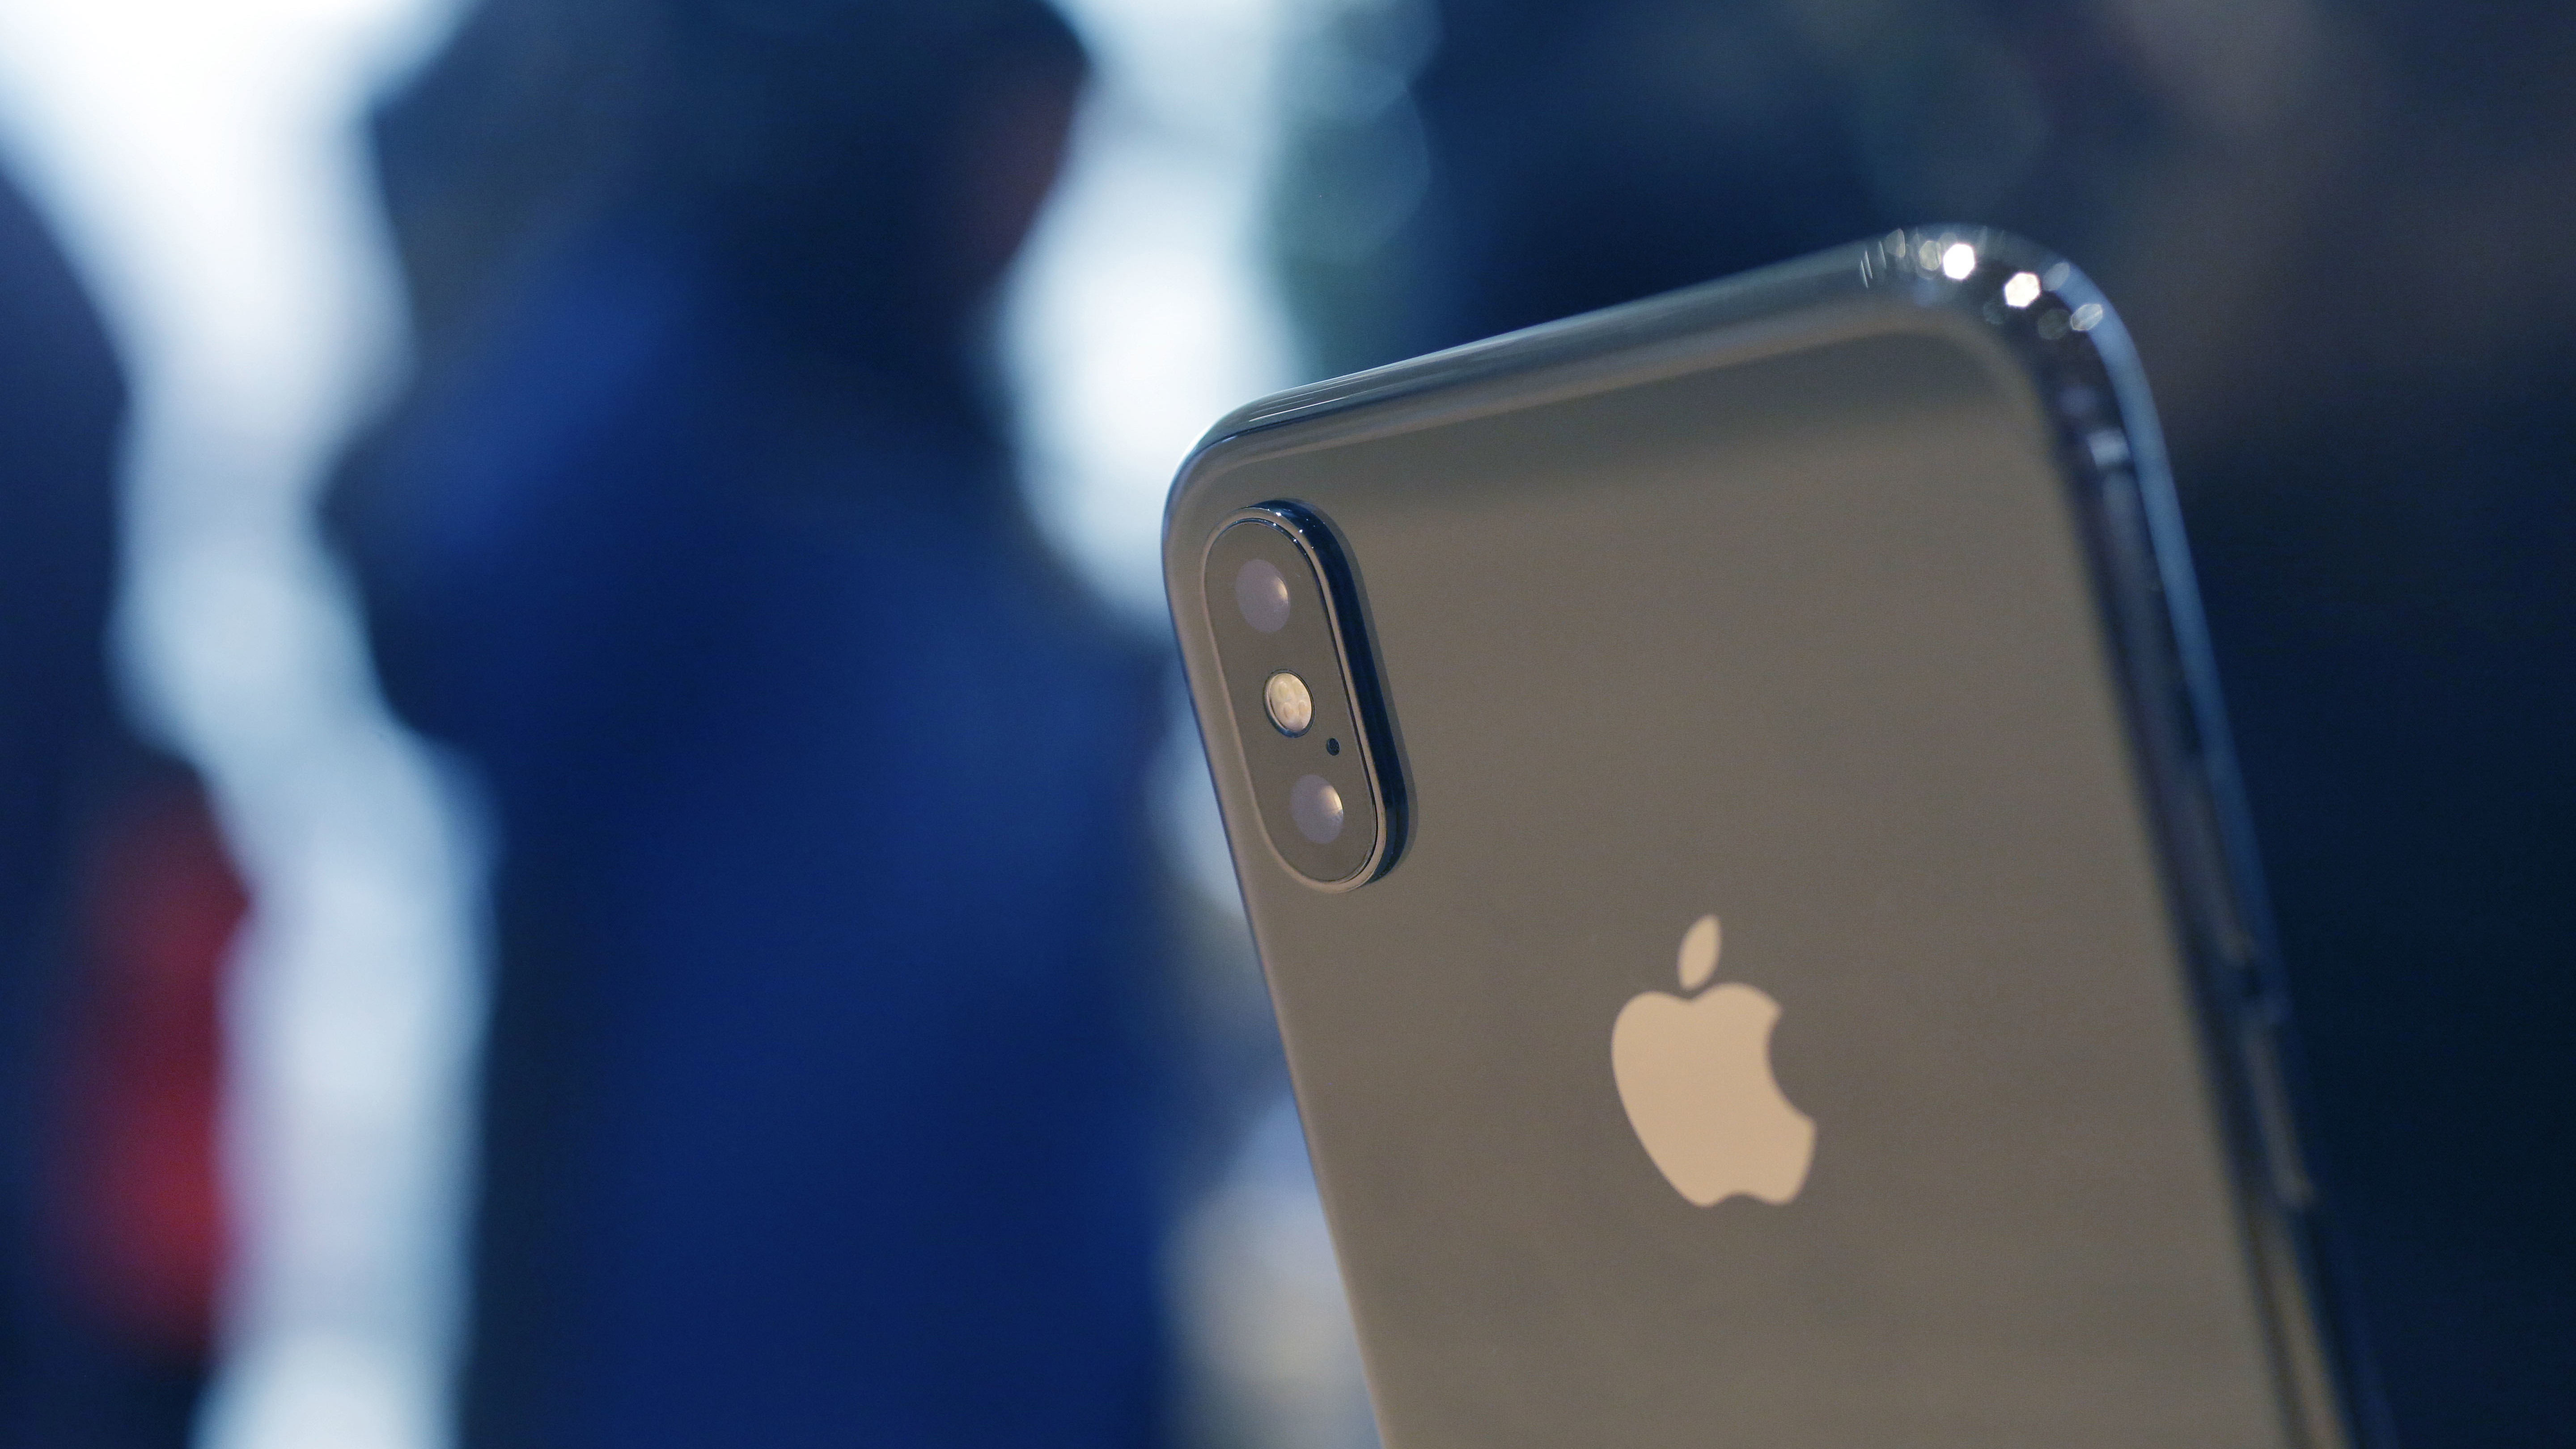 The Apple iPhone X sits on display at the new Apple Michigan Avenue store along the Chicago River Friday, Nov. 3, 2017, in Chicago. Apple launched its latests generation of the popular phone Friday. (AP Photo/Charles Rex Arbogast)